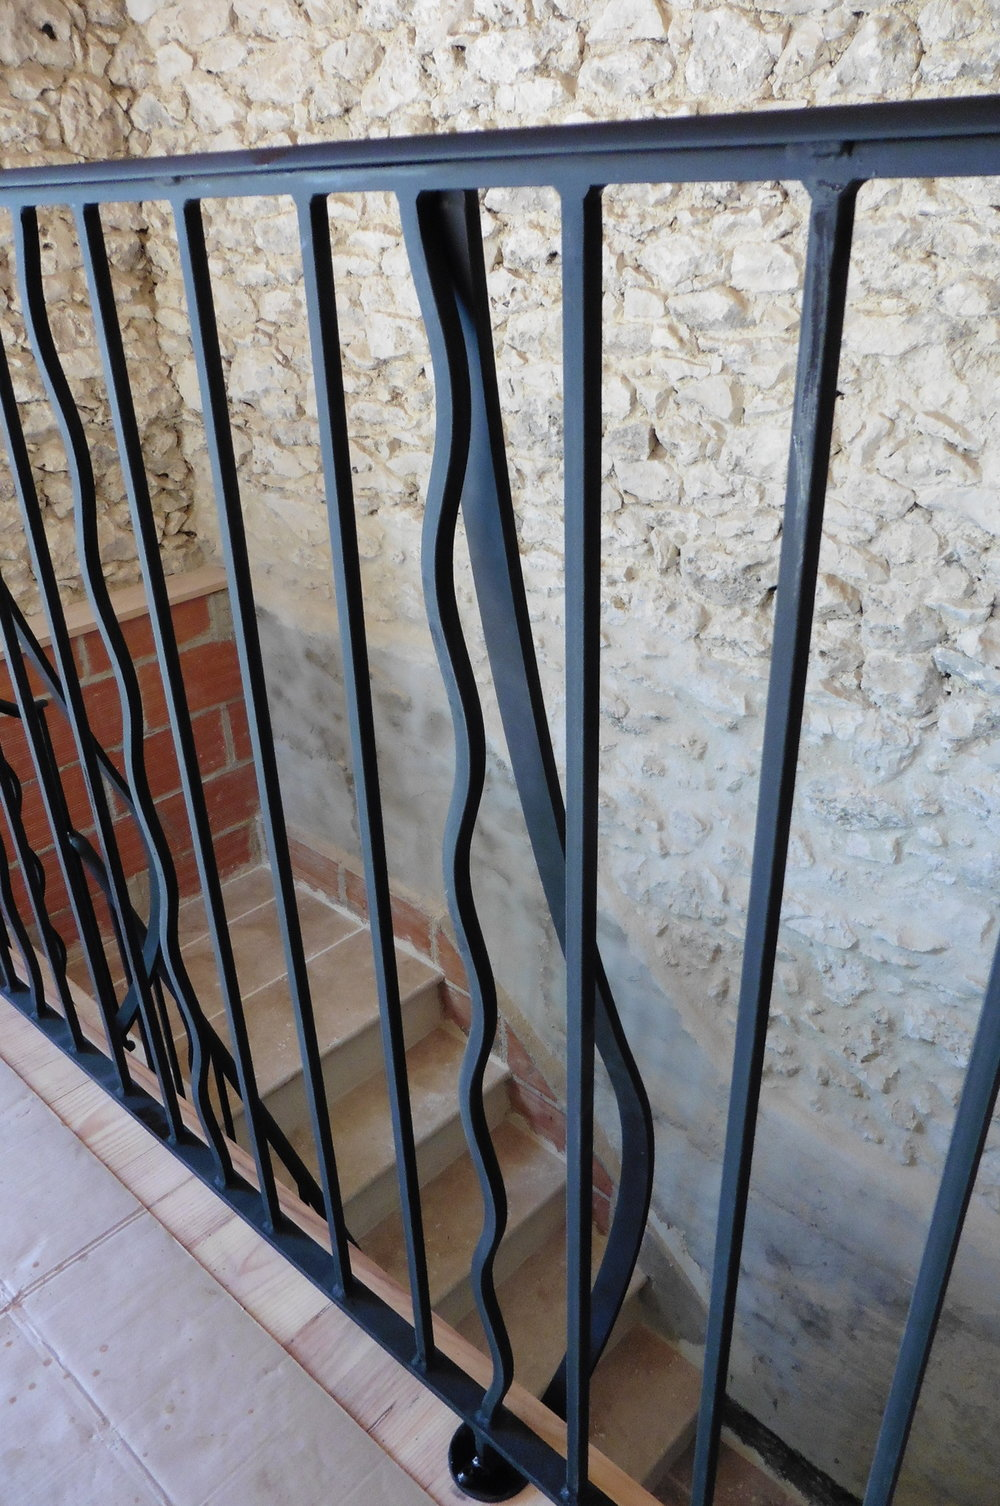 Curved struts on the outside to add extra strength along the length of the handrail.